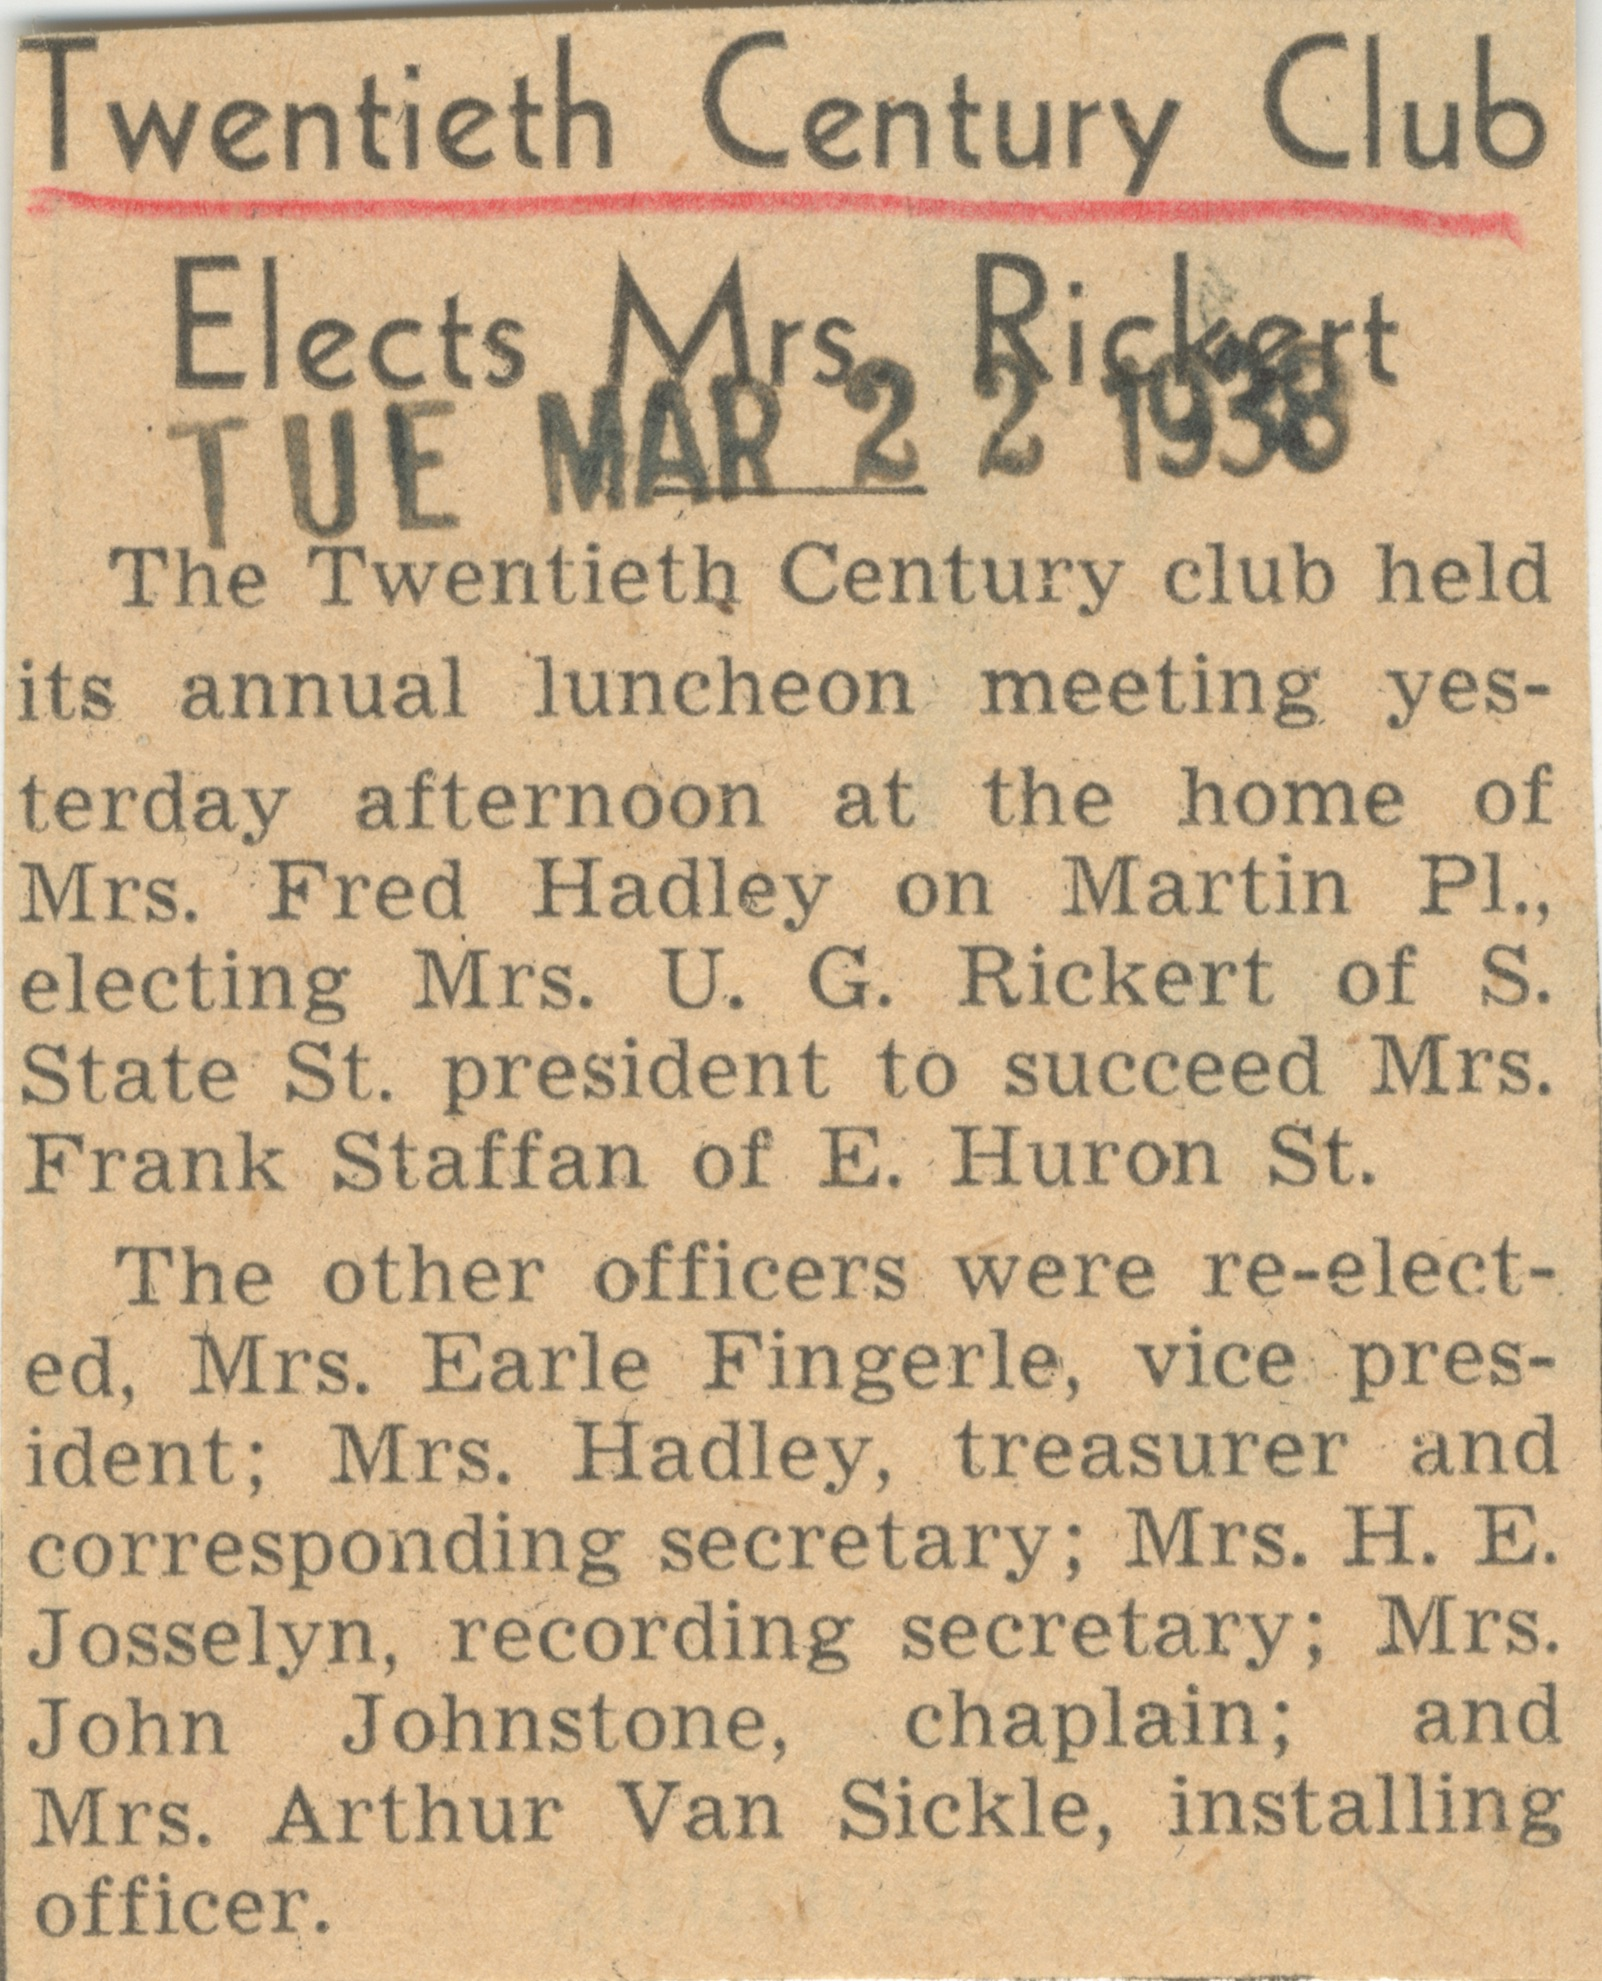 Twentieth Century Club Elects Mrs. Rickert image